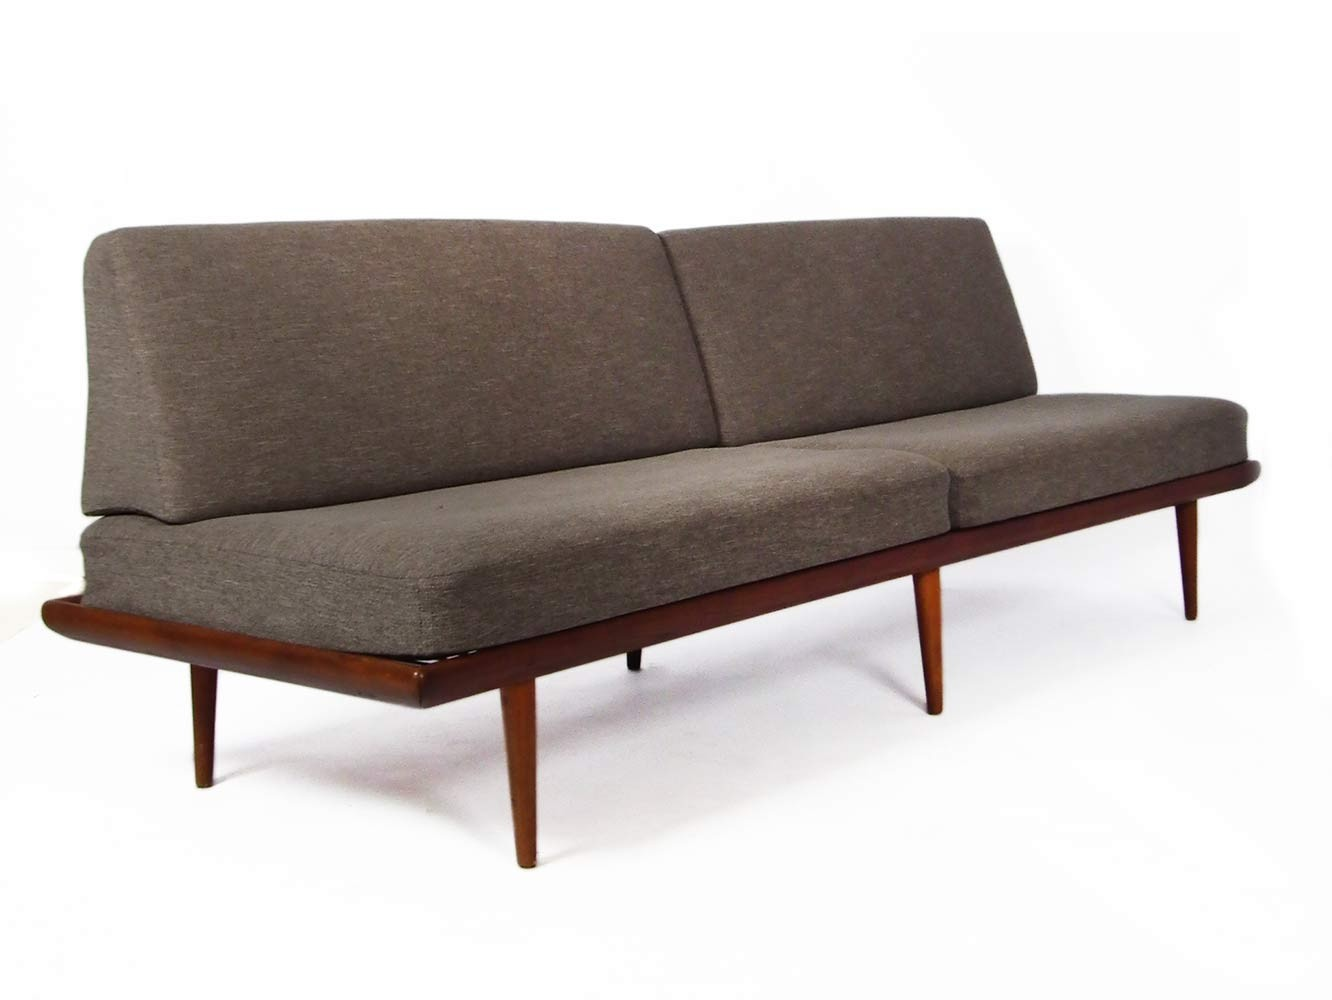 Daybed by Peter Hvidt & Orla Mølgaard Nielsen for France & Son, 1950s